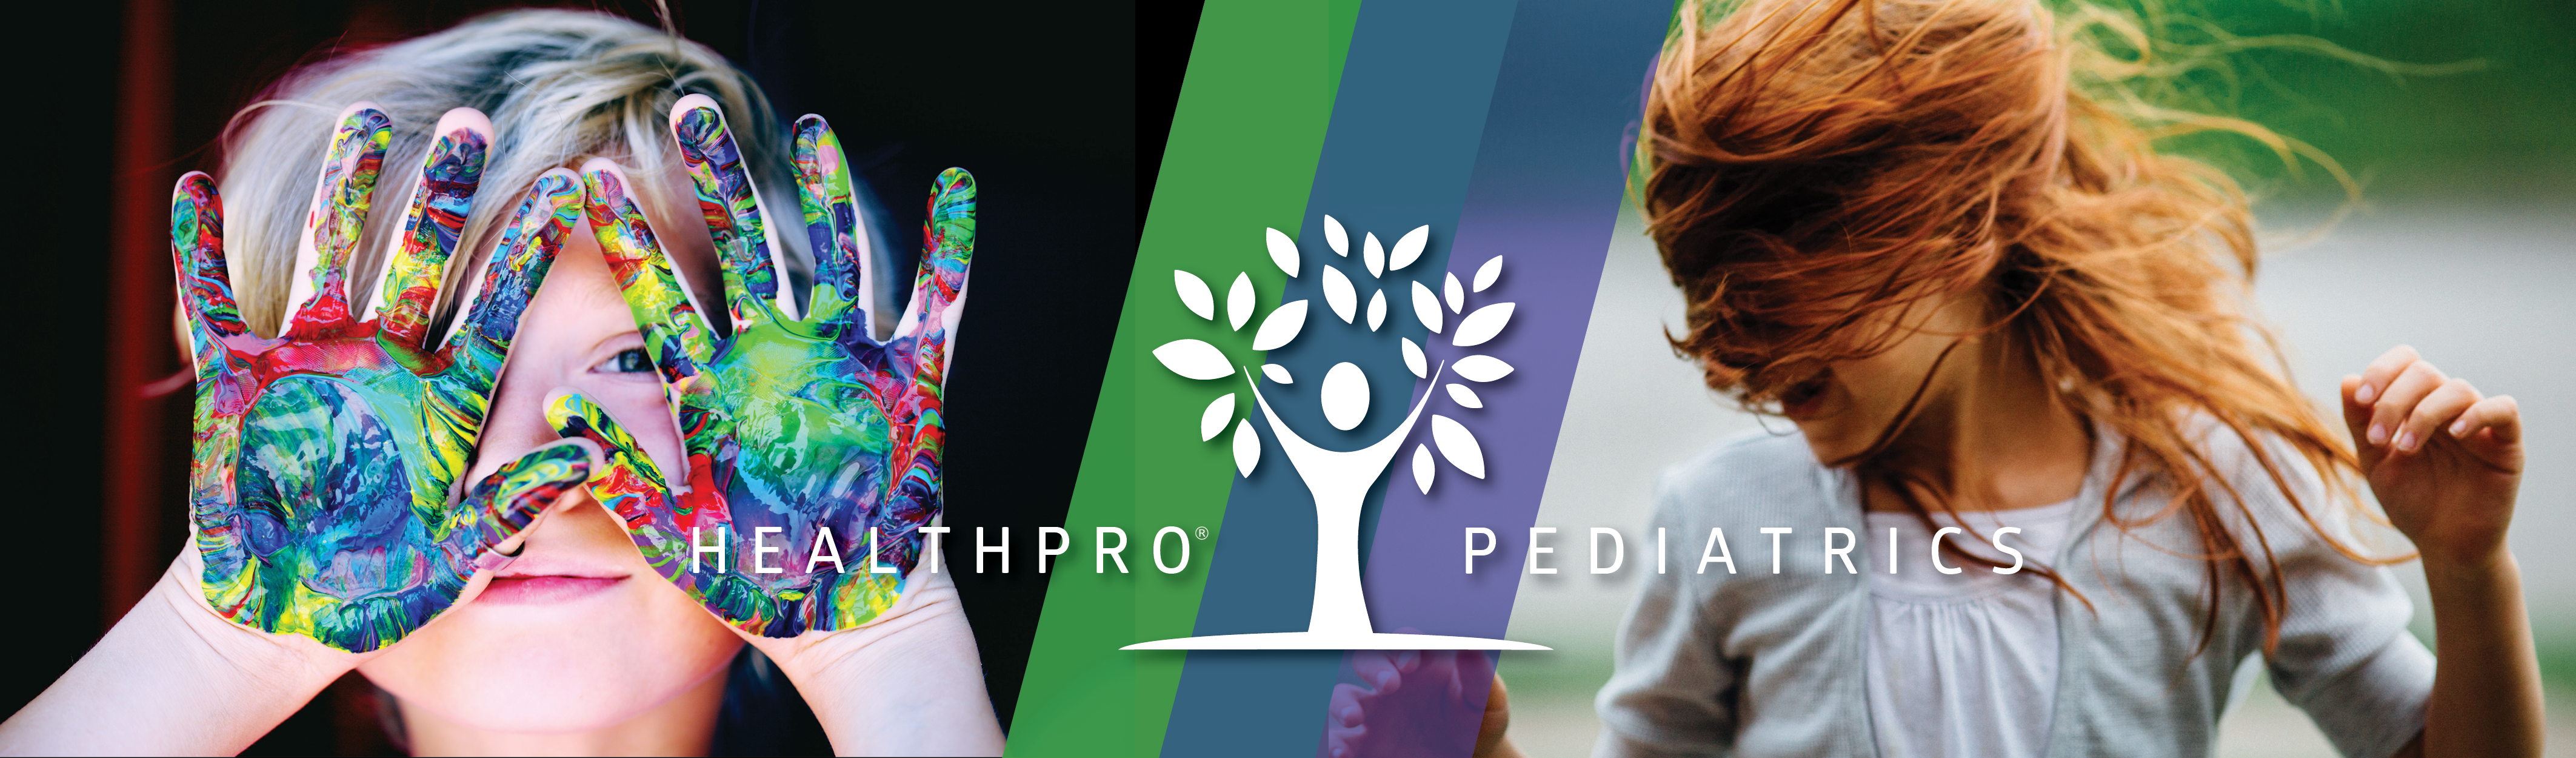 HealthPRO Pediatrics: Together or apart, we are united in helping children